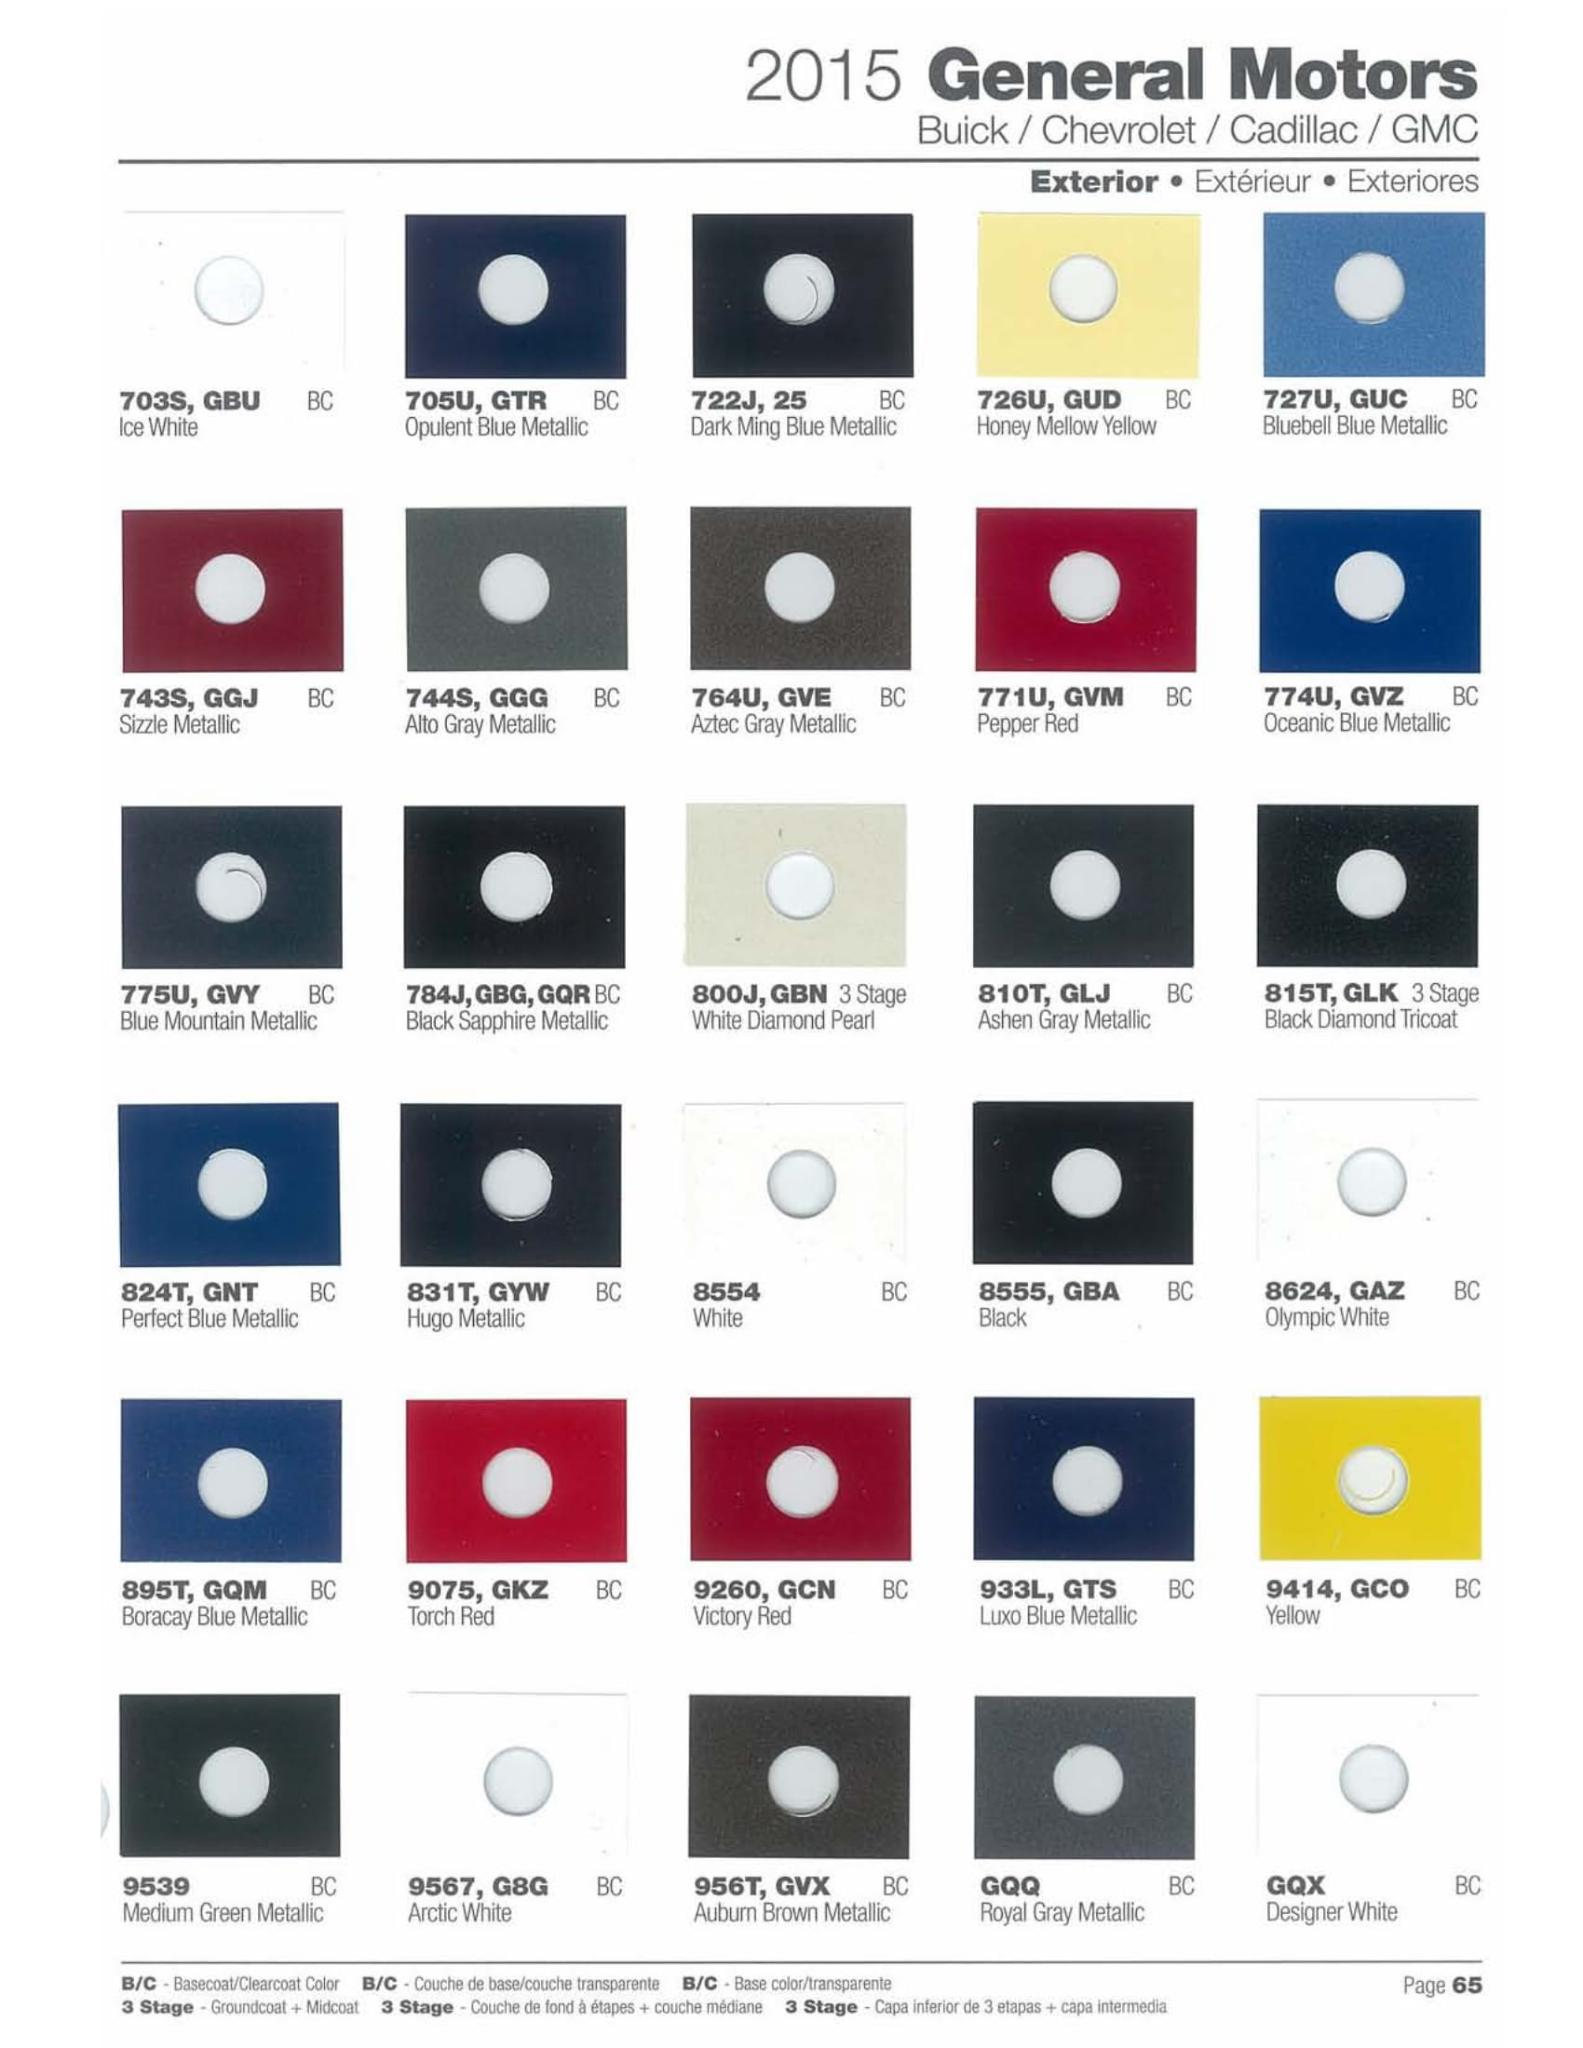 Paint Code and Color Chart for all 2015 Gm Models